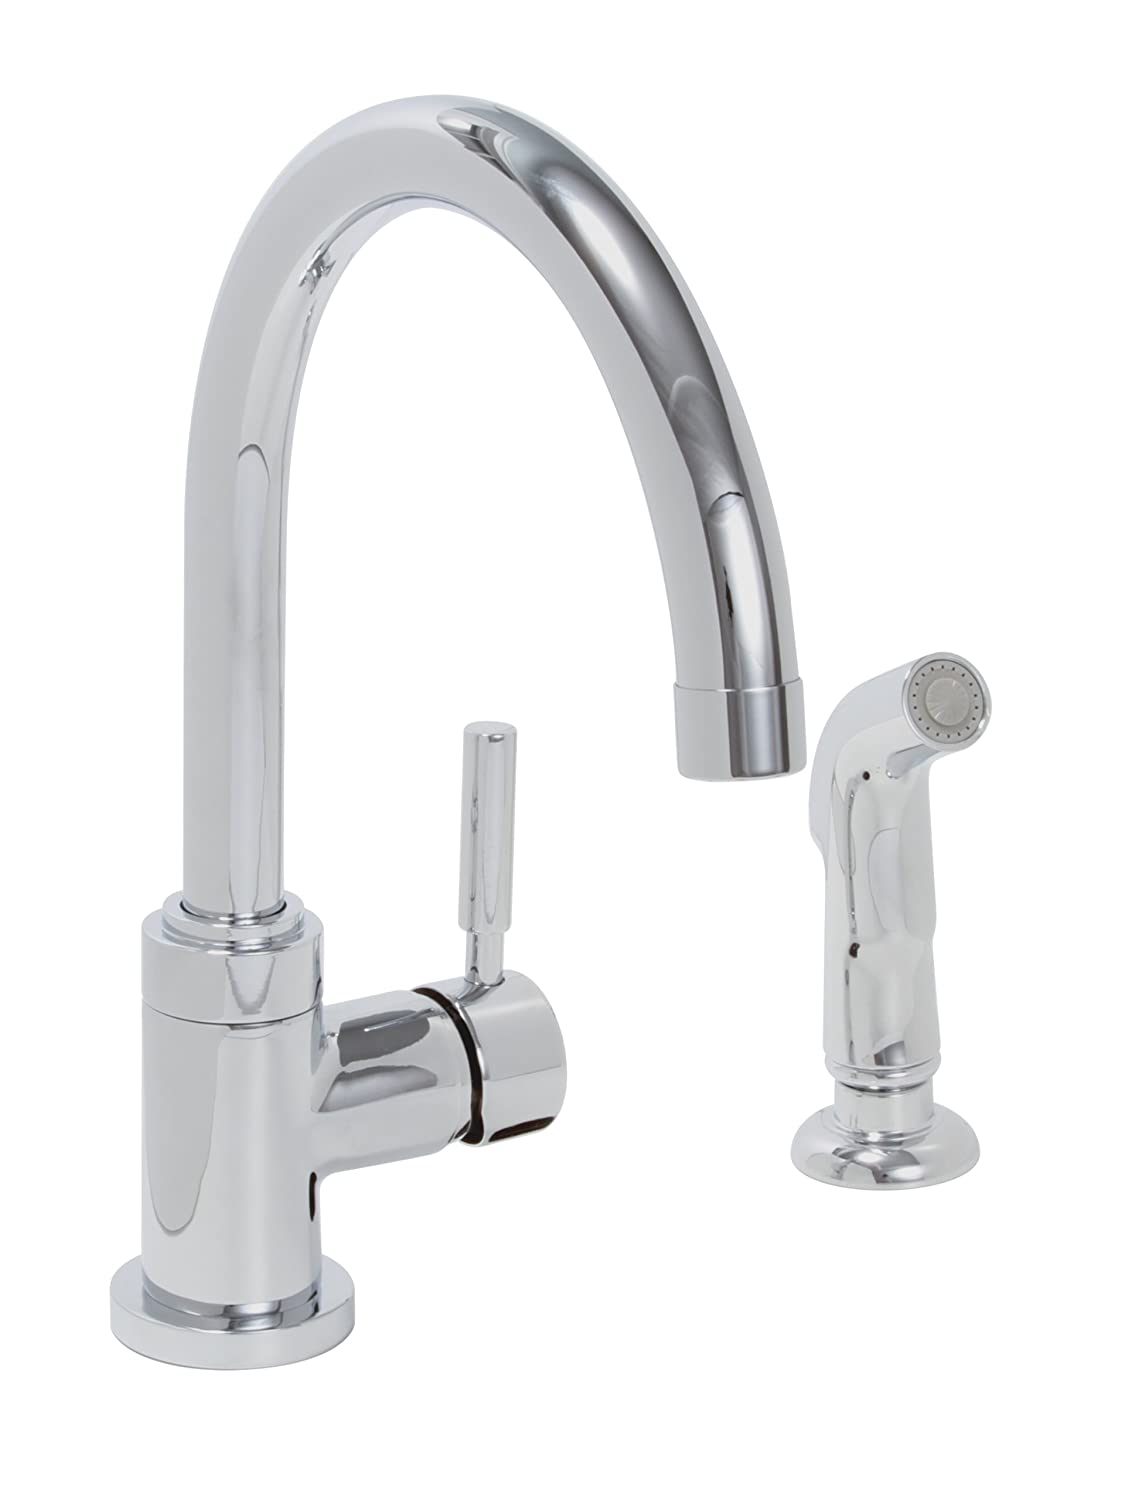 premier faucet 120098 essen lead free single handle high arc kitchen faucet pvd brushed nickel touch on kitchen sink faucets amazon com